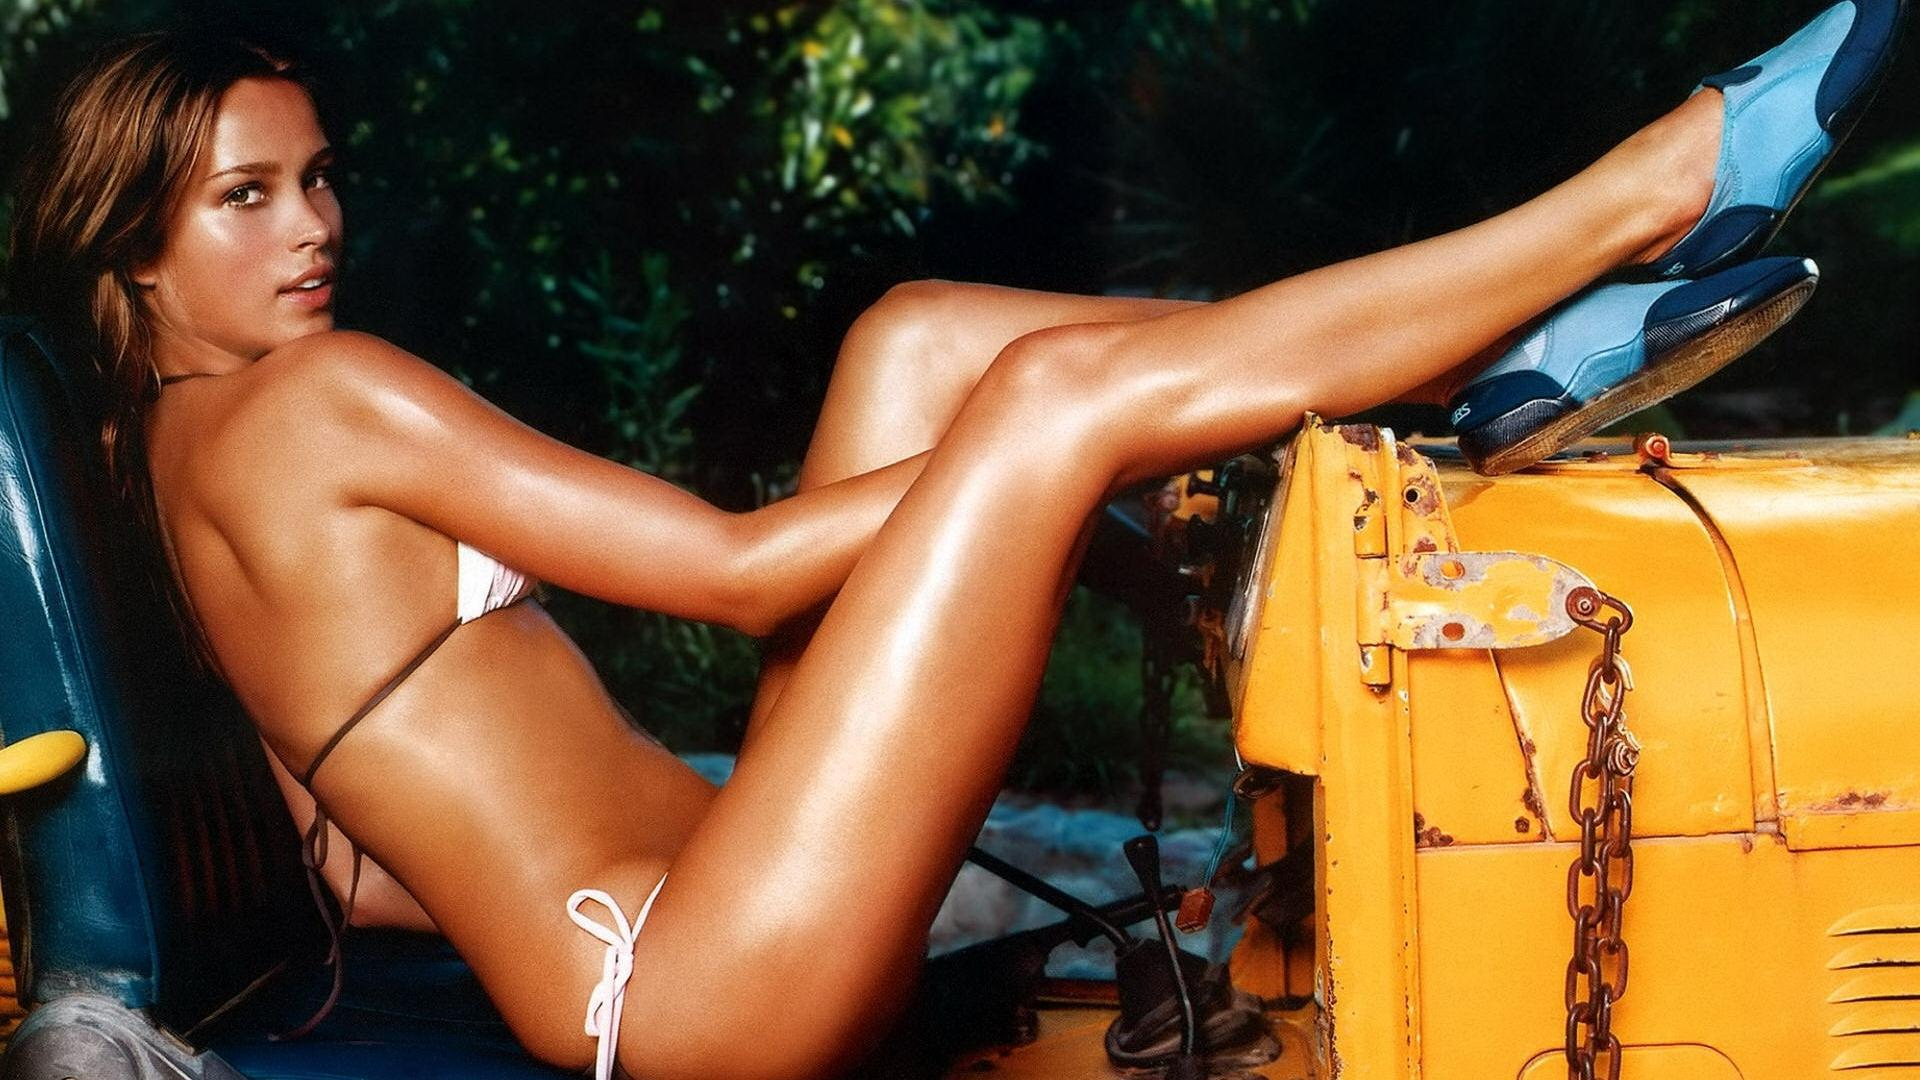 petra nemcova wallpapers images photos pictures backgrounds